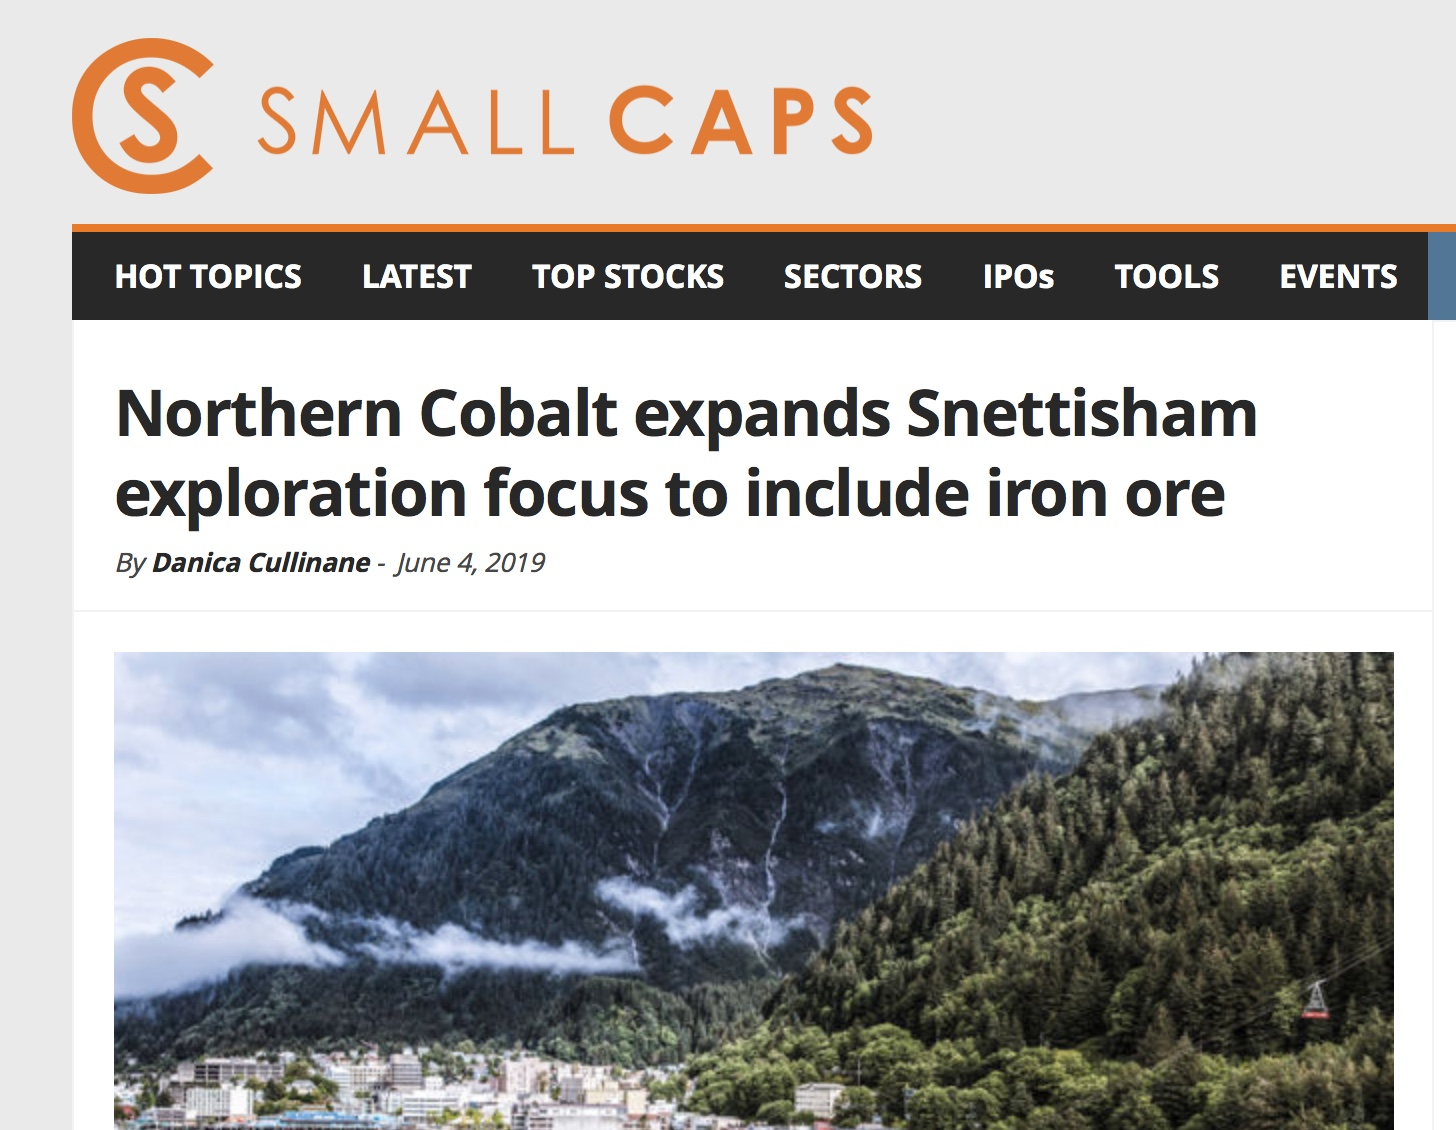 SMALLCAPS Iron article